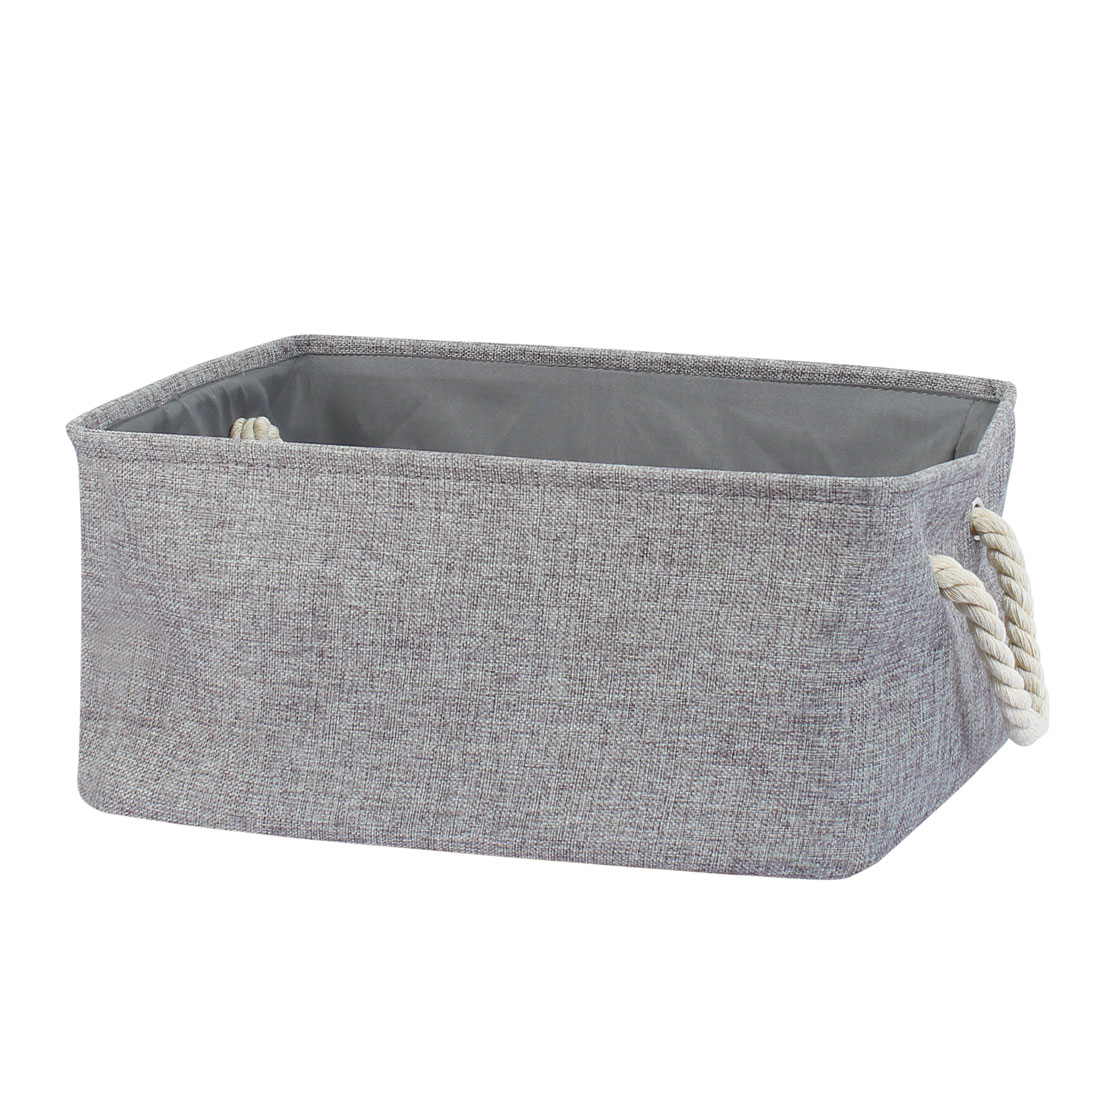 Incroyable Collapsible Fabric Storage Bins Basket Toys Towels Storage Container